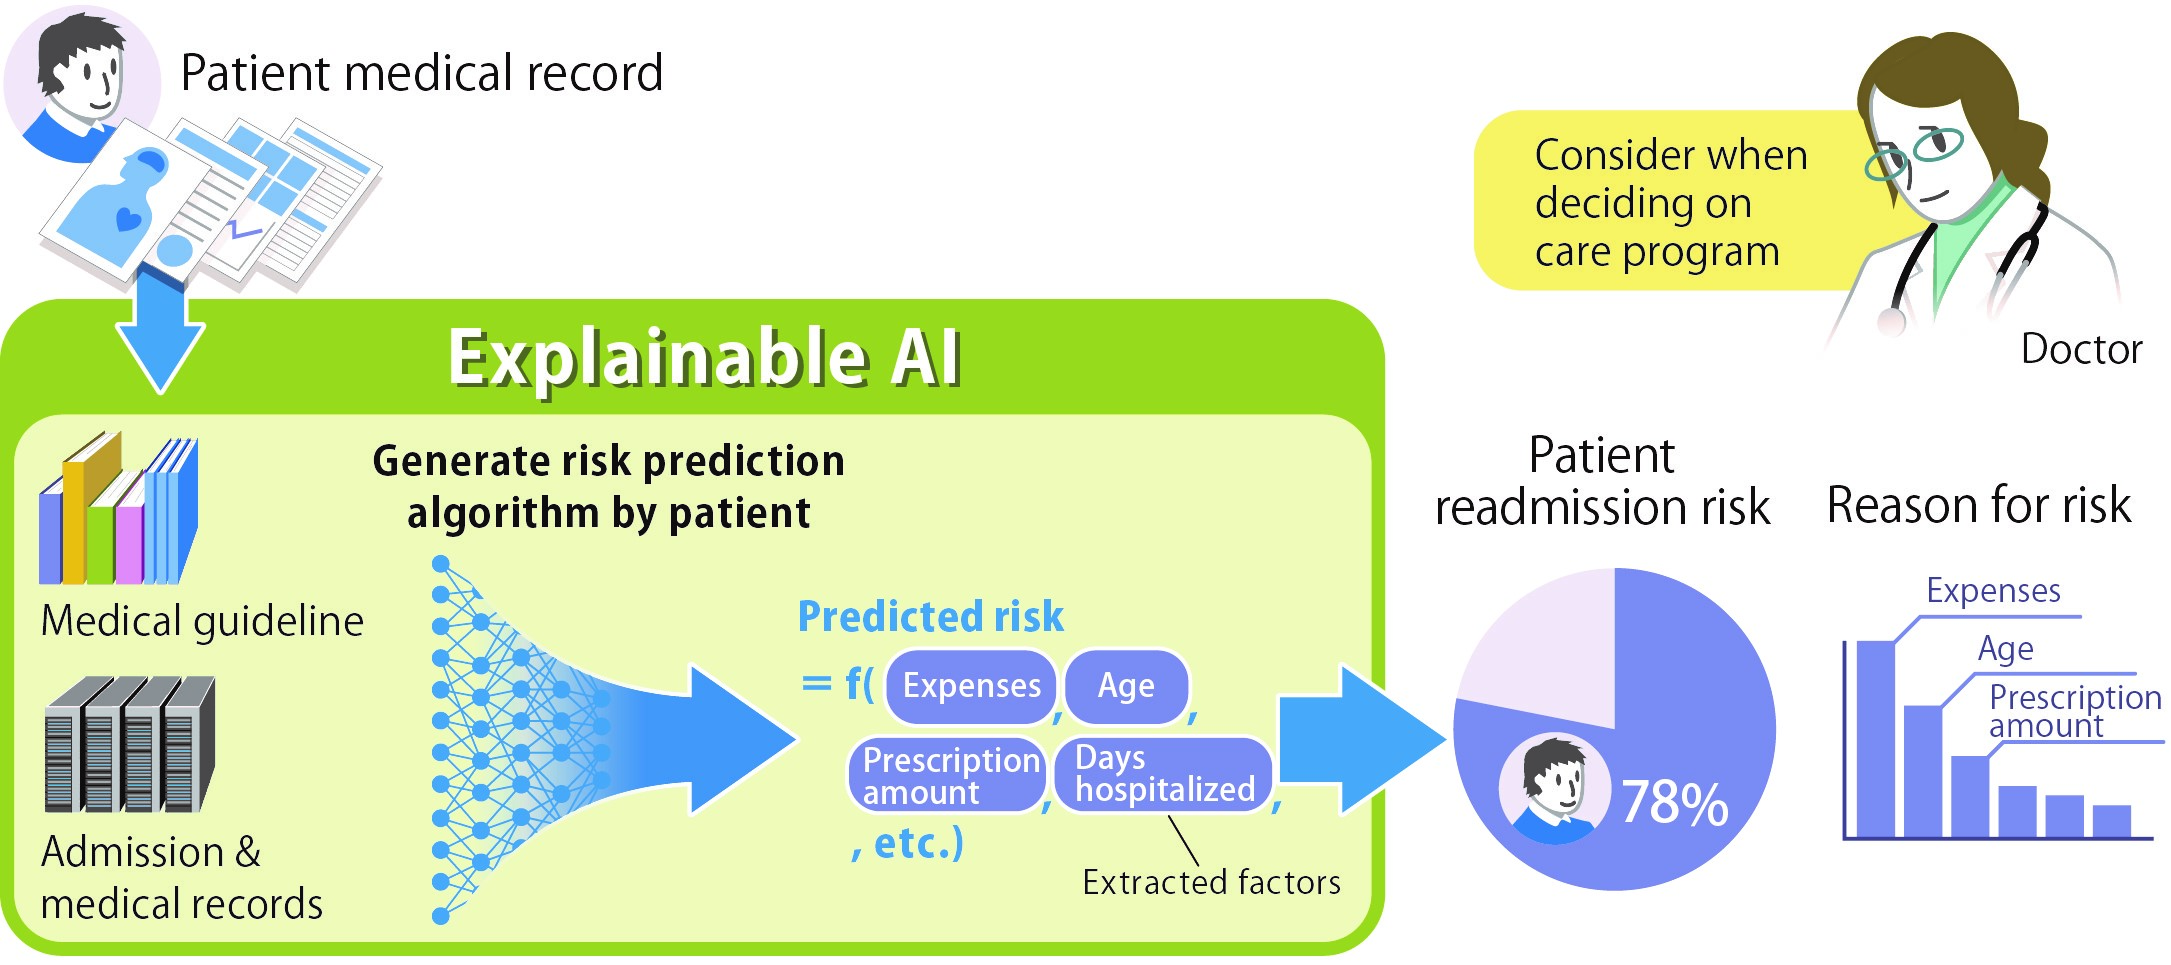 Example use situation/case of this AI technology in predicting readmission risk